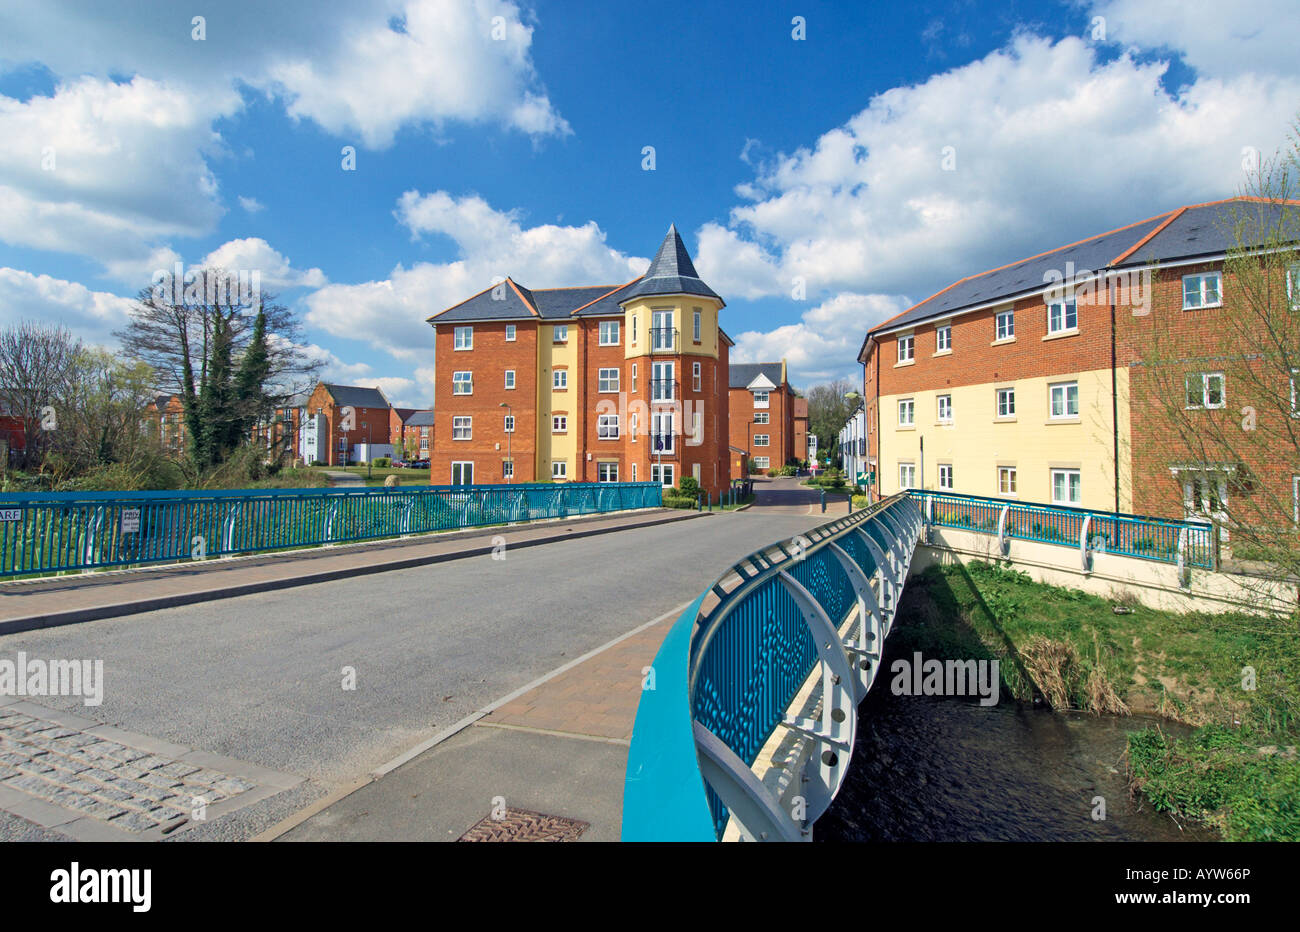 Smiths Wharf, Wantage, Oxfordshire, England. A Development of new homes beside Letcombe Brook. - Stock Image